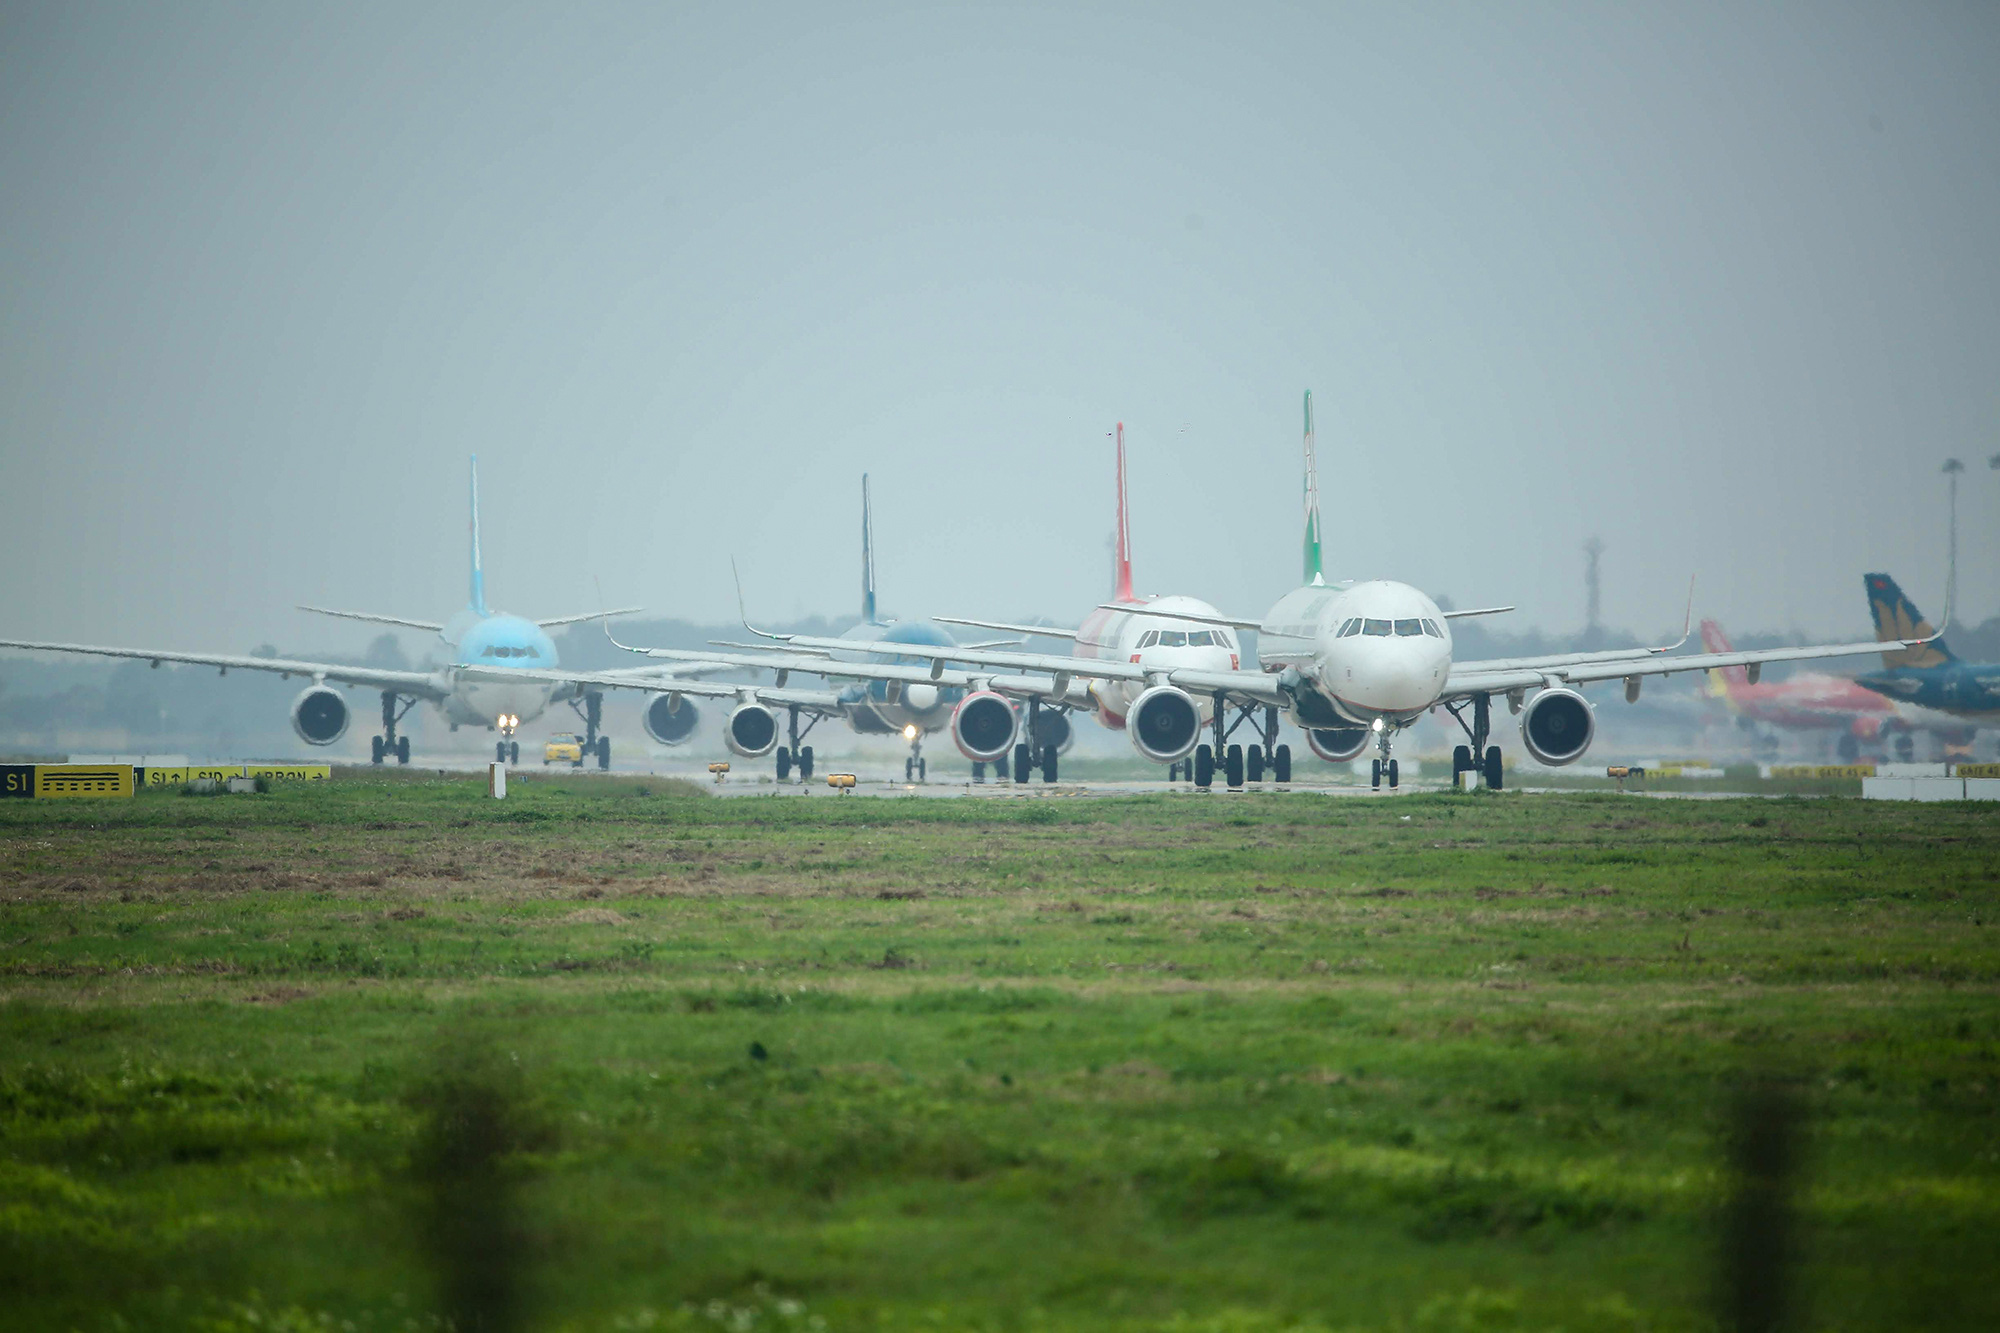 Vietnam aviation authority ceases all flights to and from coronavirus-stricken Wuhan